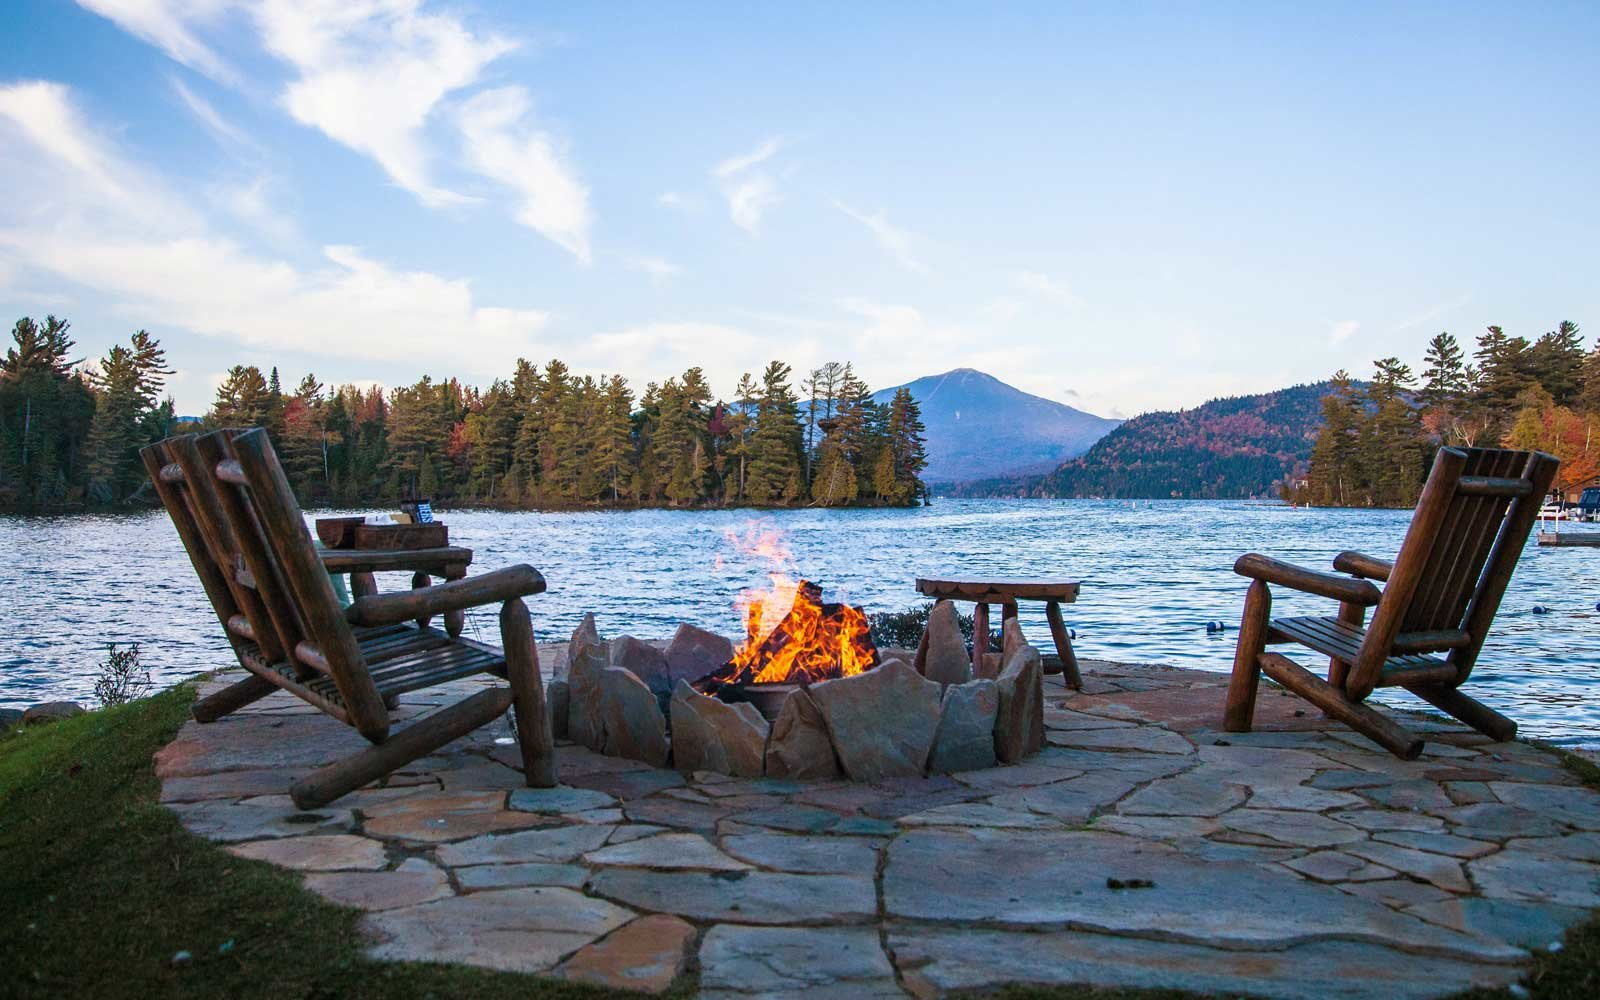 Fireside at Whiteface lodge